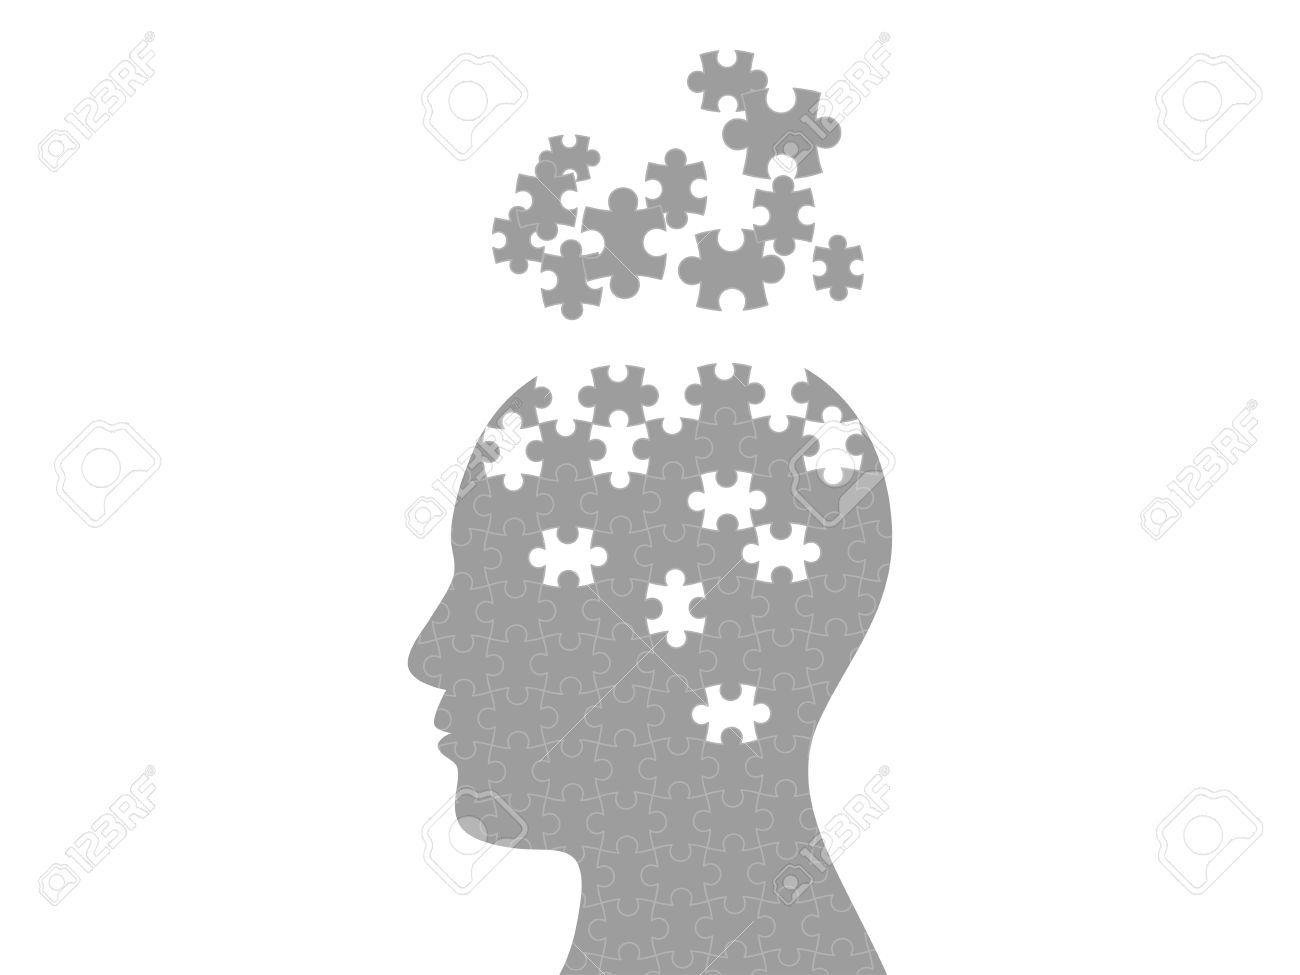 Puzzle head exploding mind graphic template - 30397521